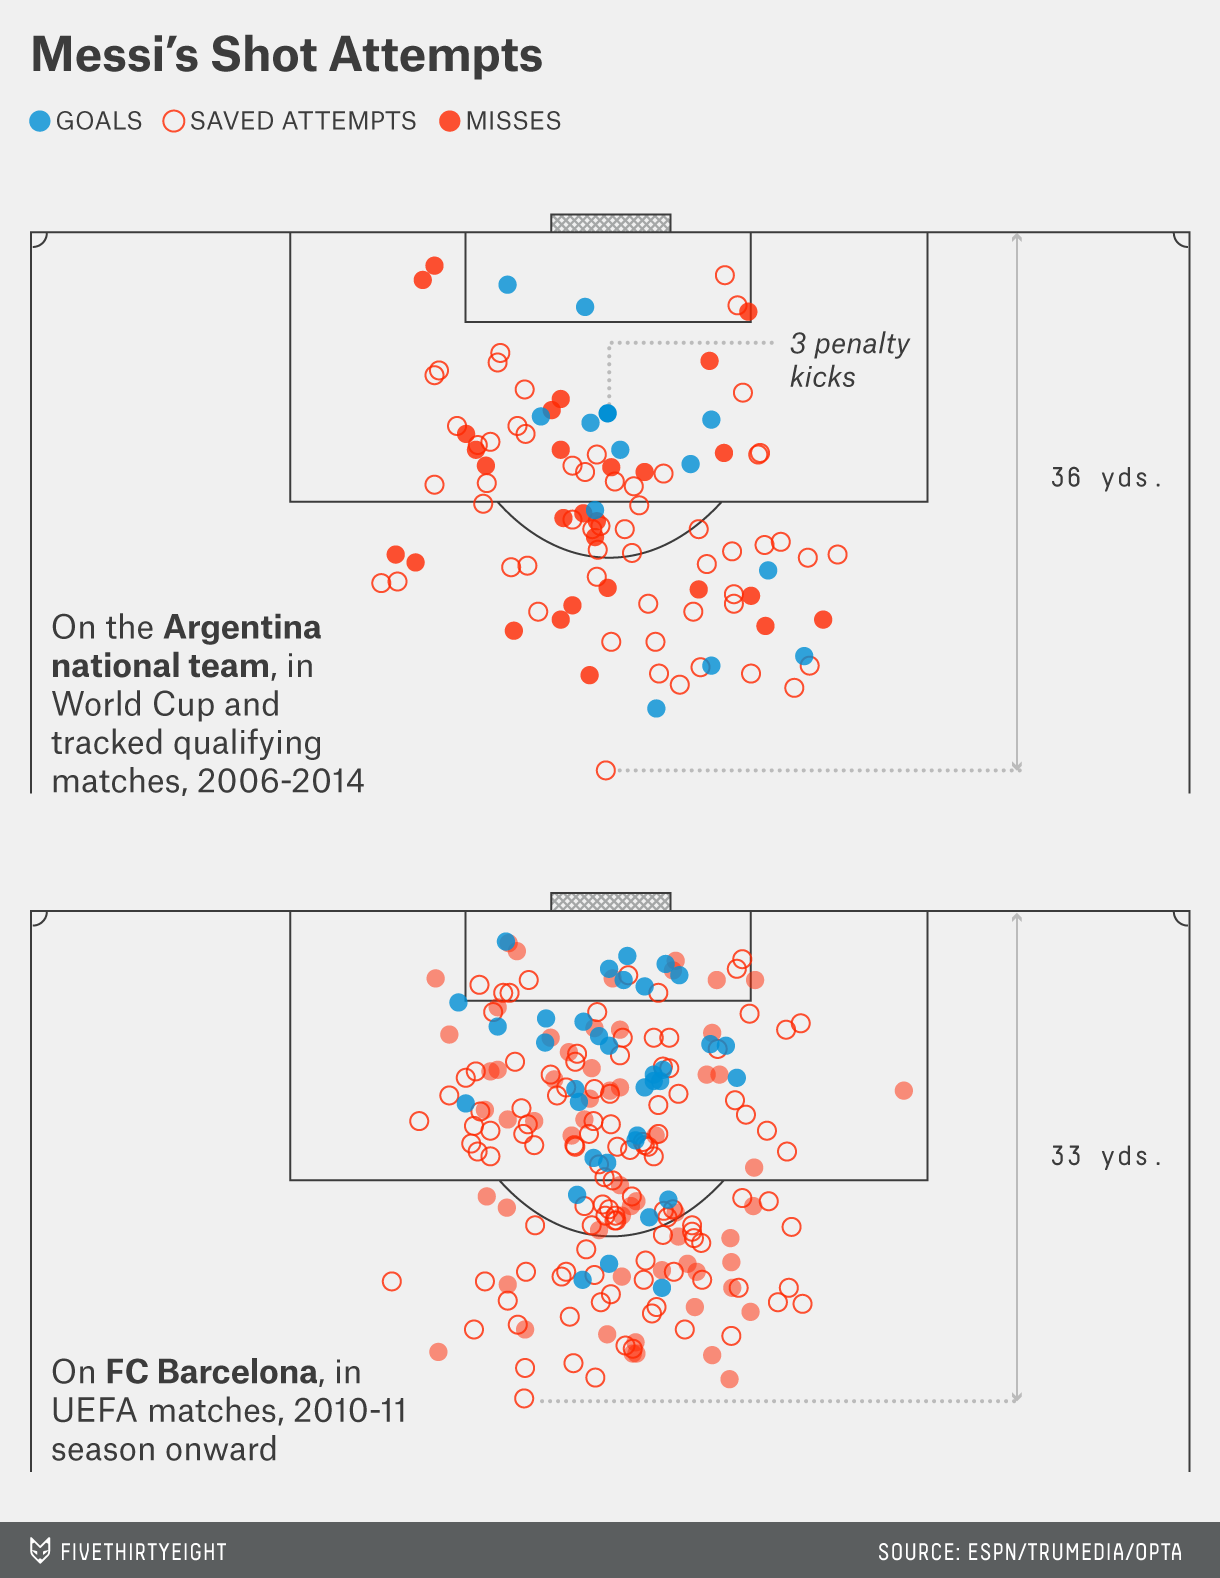 morris-feature-messi-shot-attempts-1